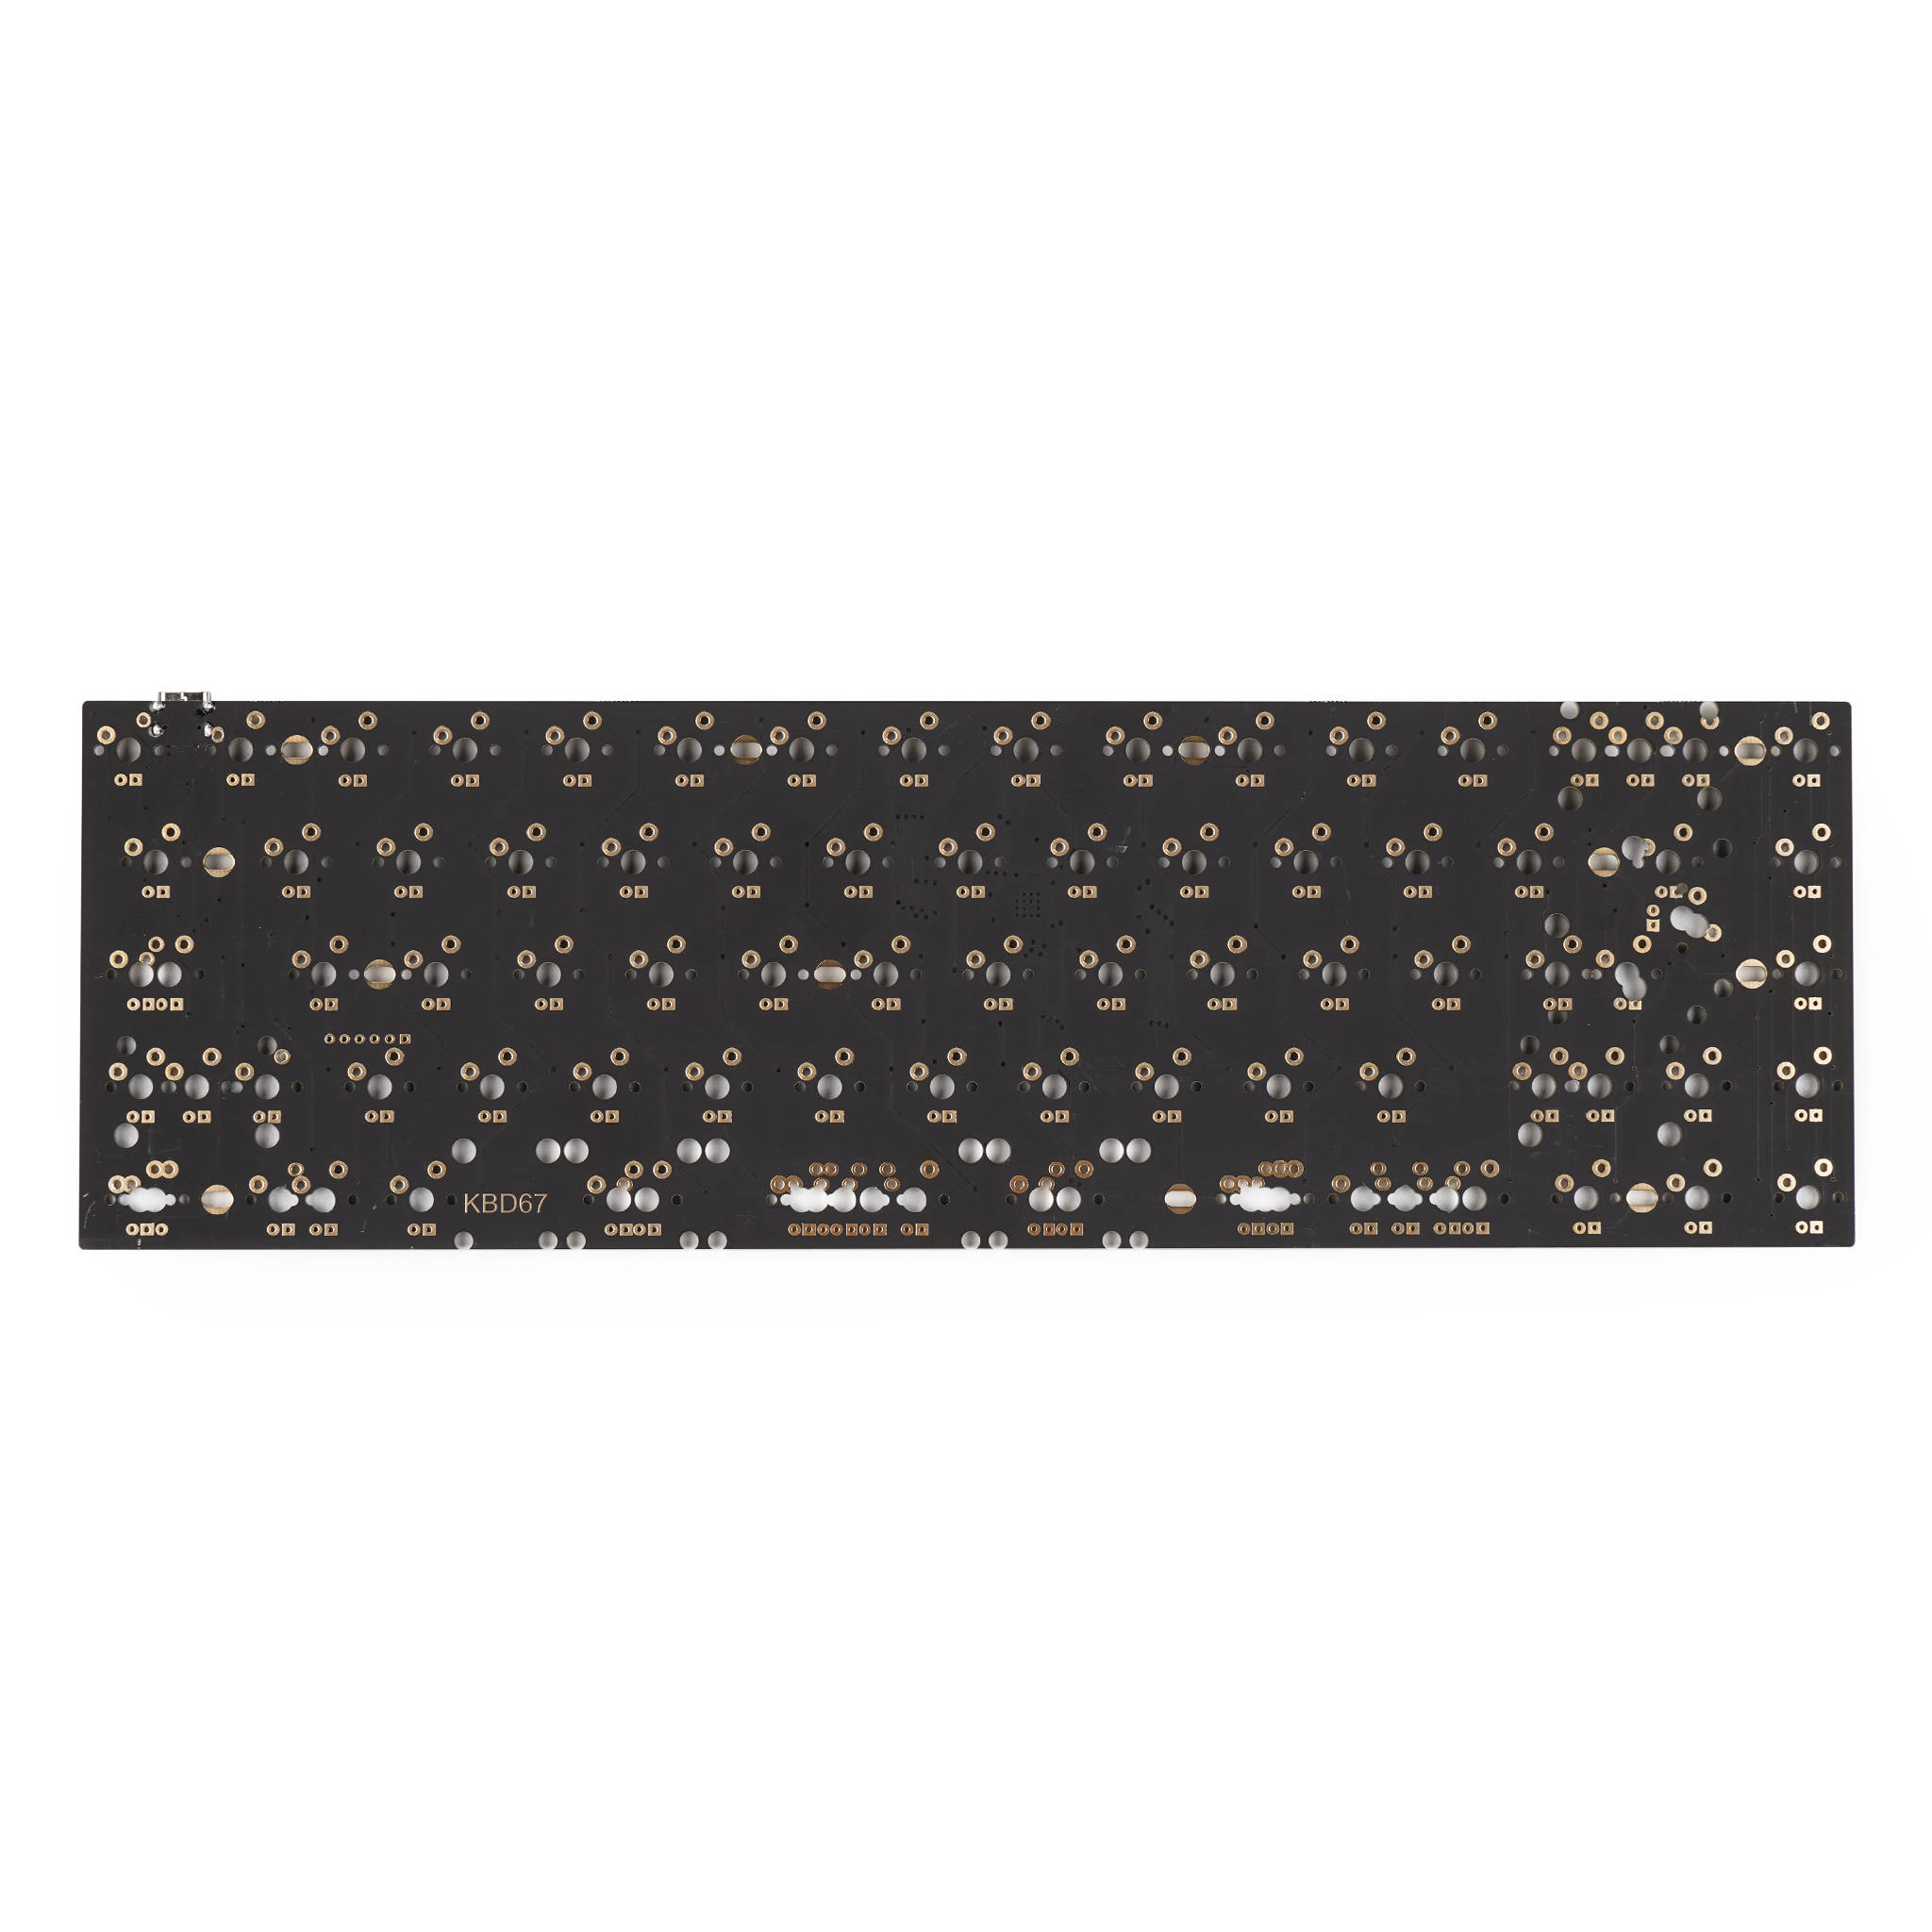 KBD65 65% Custom Mechanical Keyboard PCB